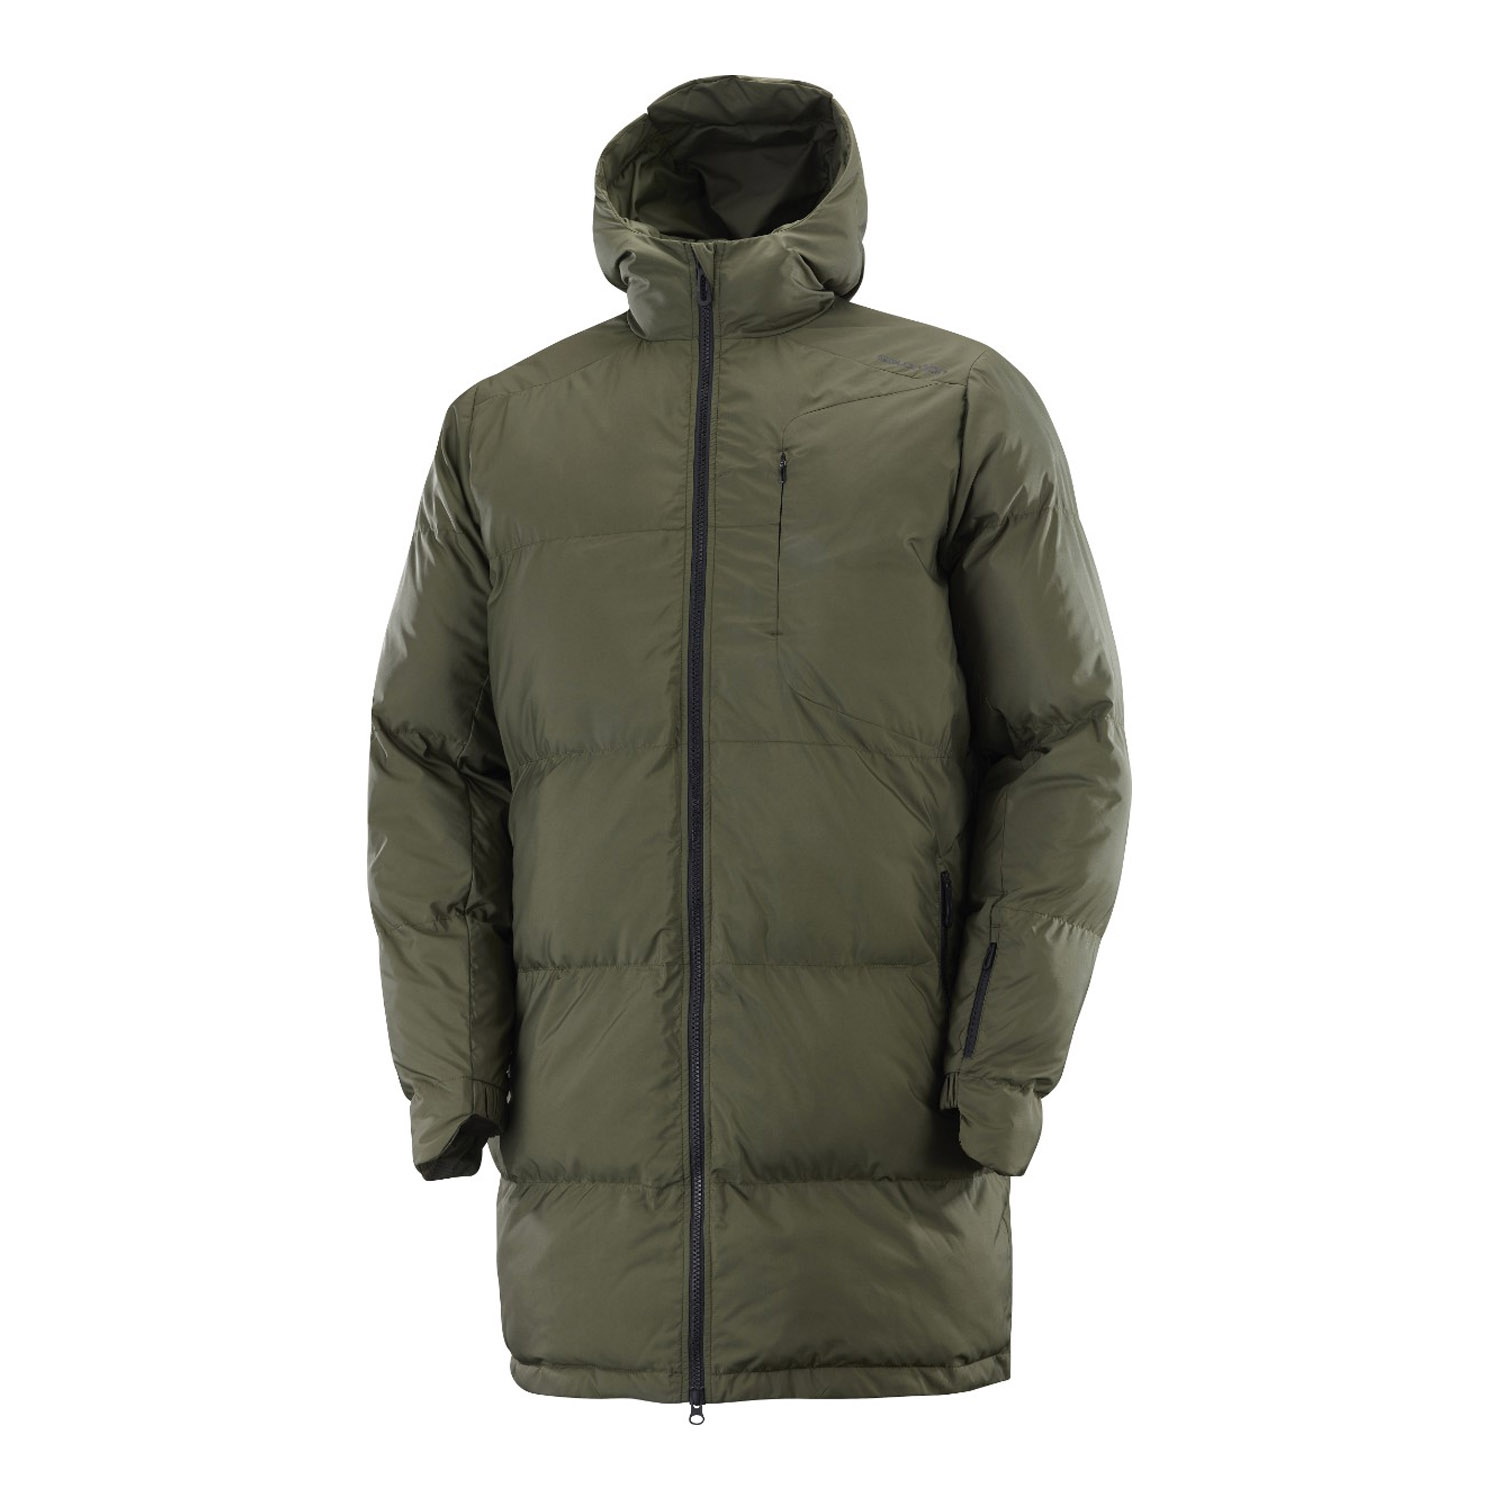 OUTLIFE LONG PUFFER JKT